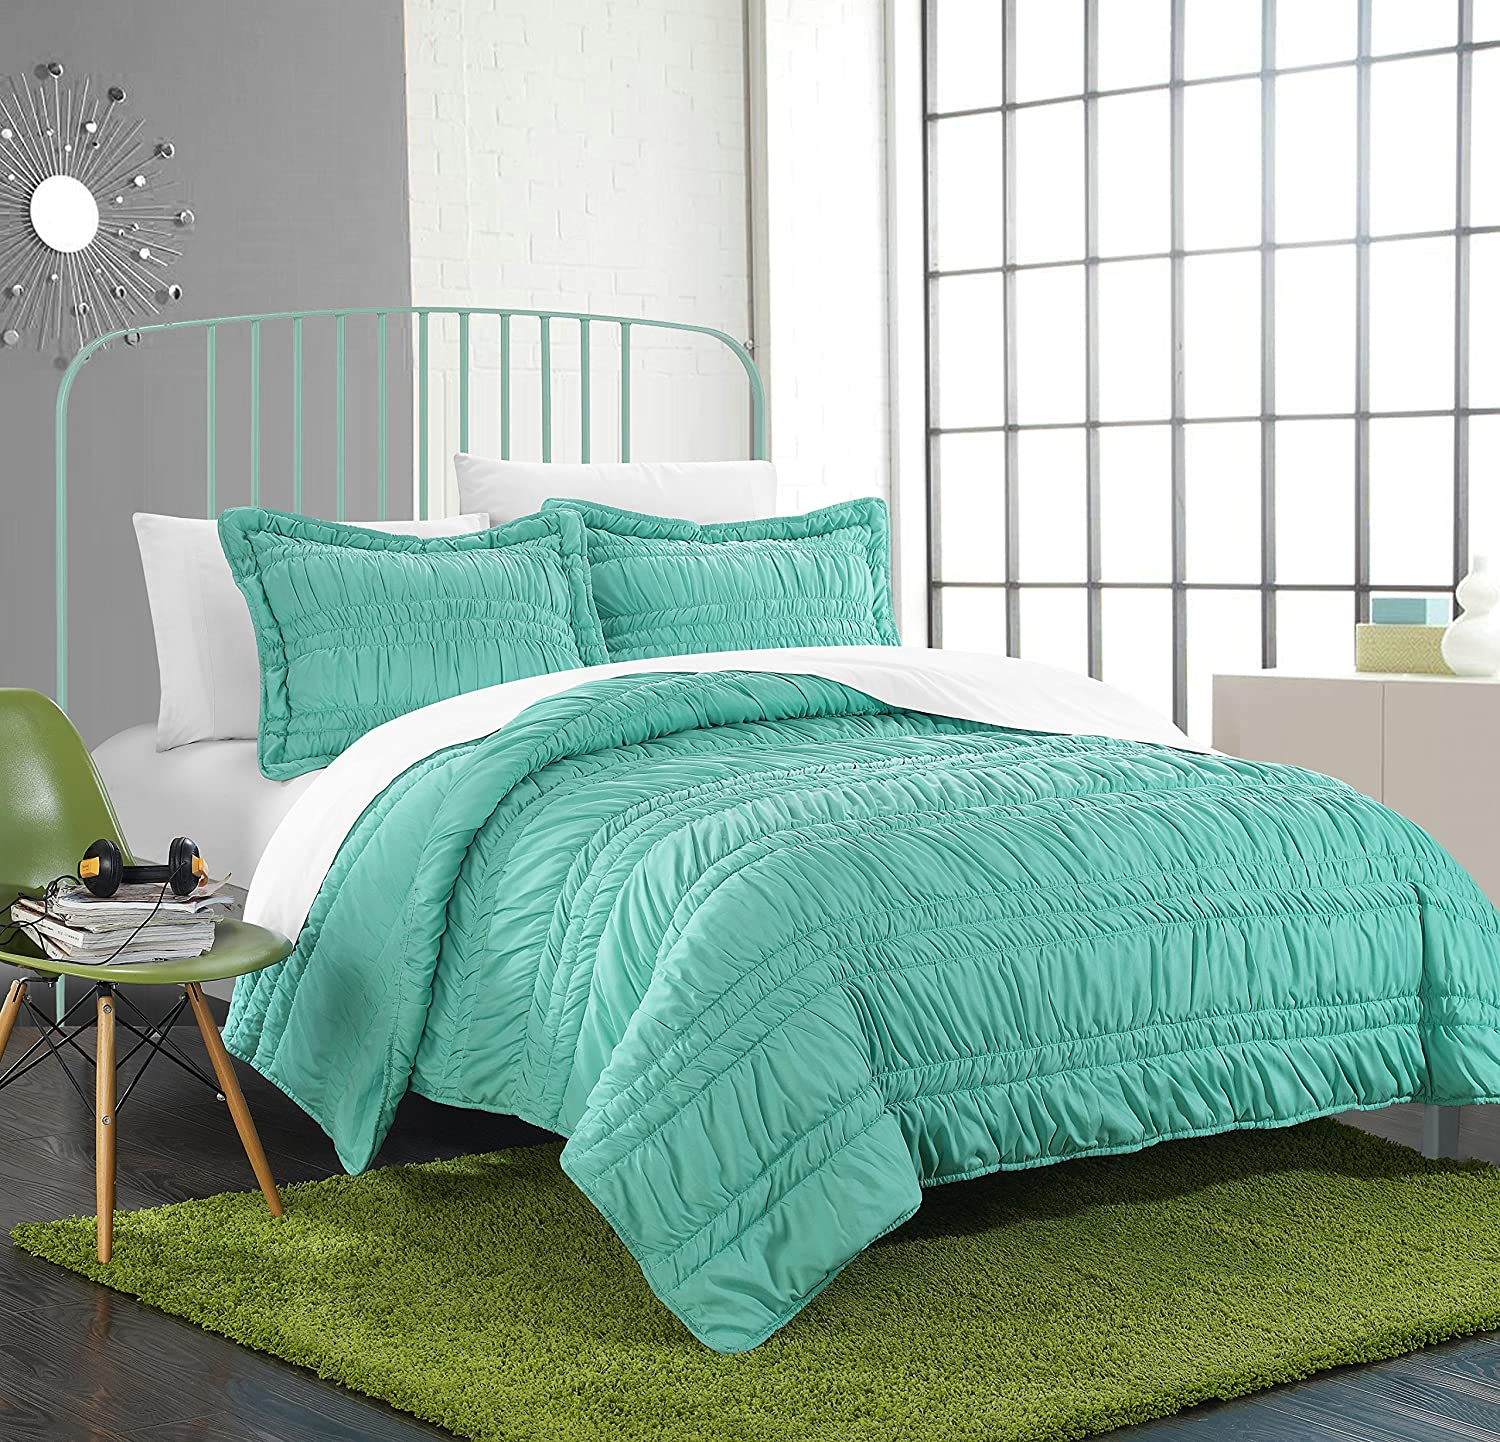 Chic Home 3 Piece Dreamer Super Soft Microfiber Pleated Ruffled Technique Quilt Set, Full, Turquoise